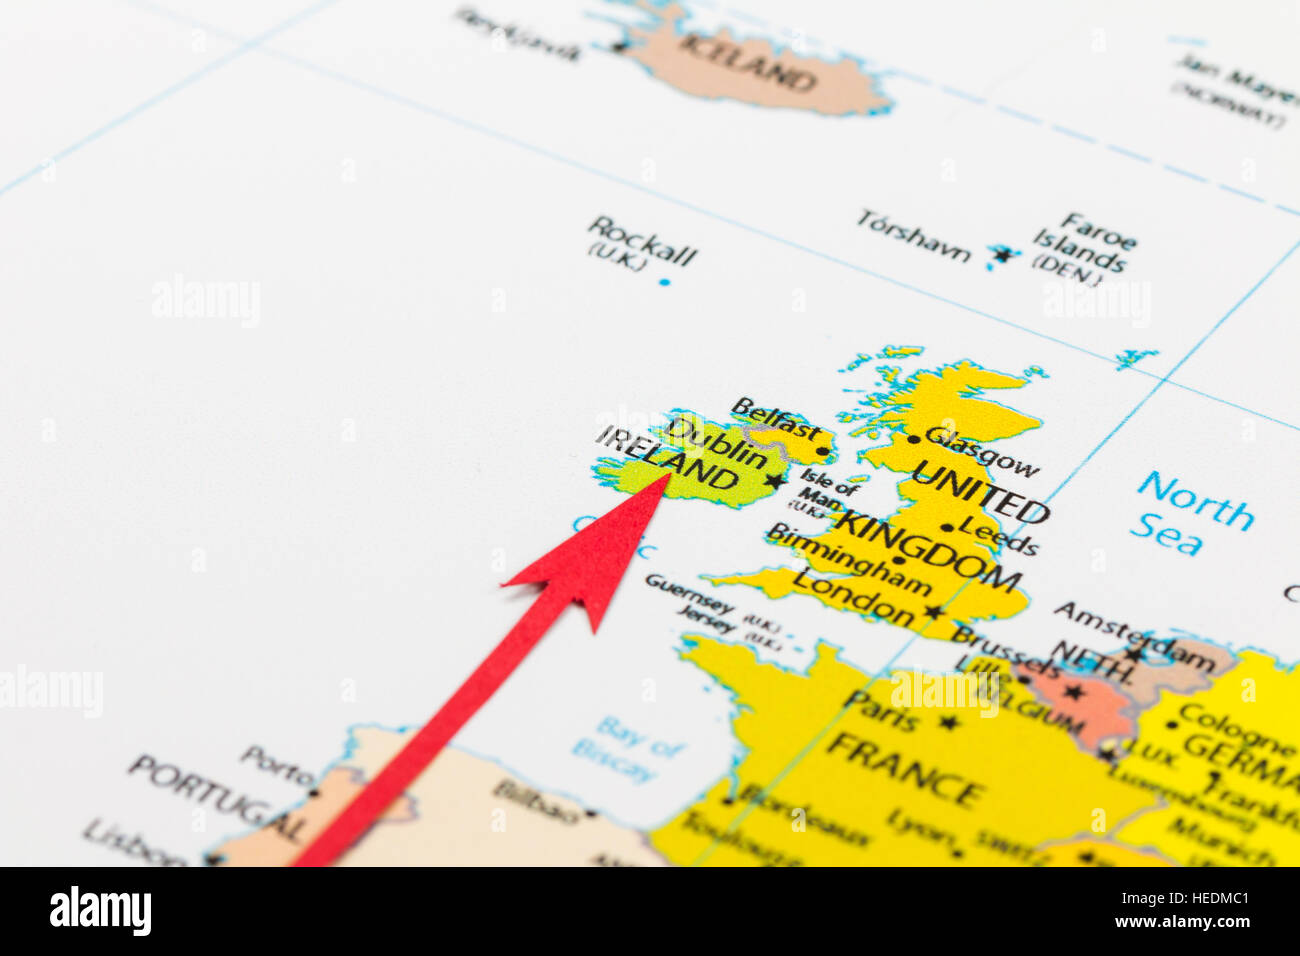 Red arrow pointing ireland on the map of europe continent stock red arrow pointing ireland on the map of europe continent gumiabroncs Gallery